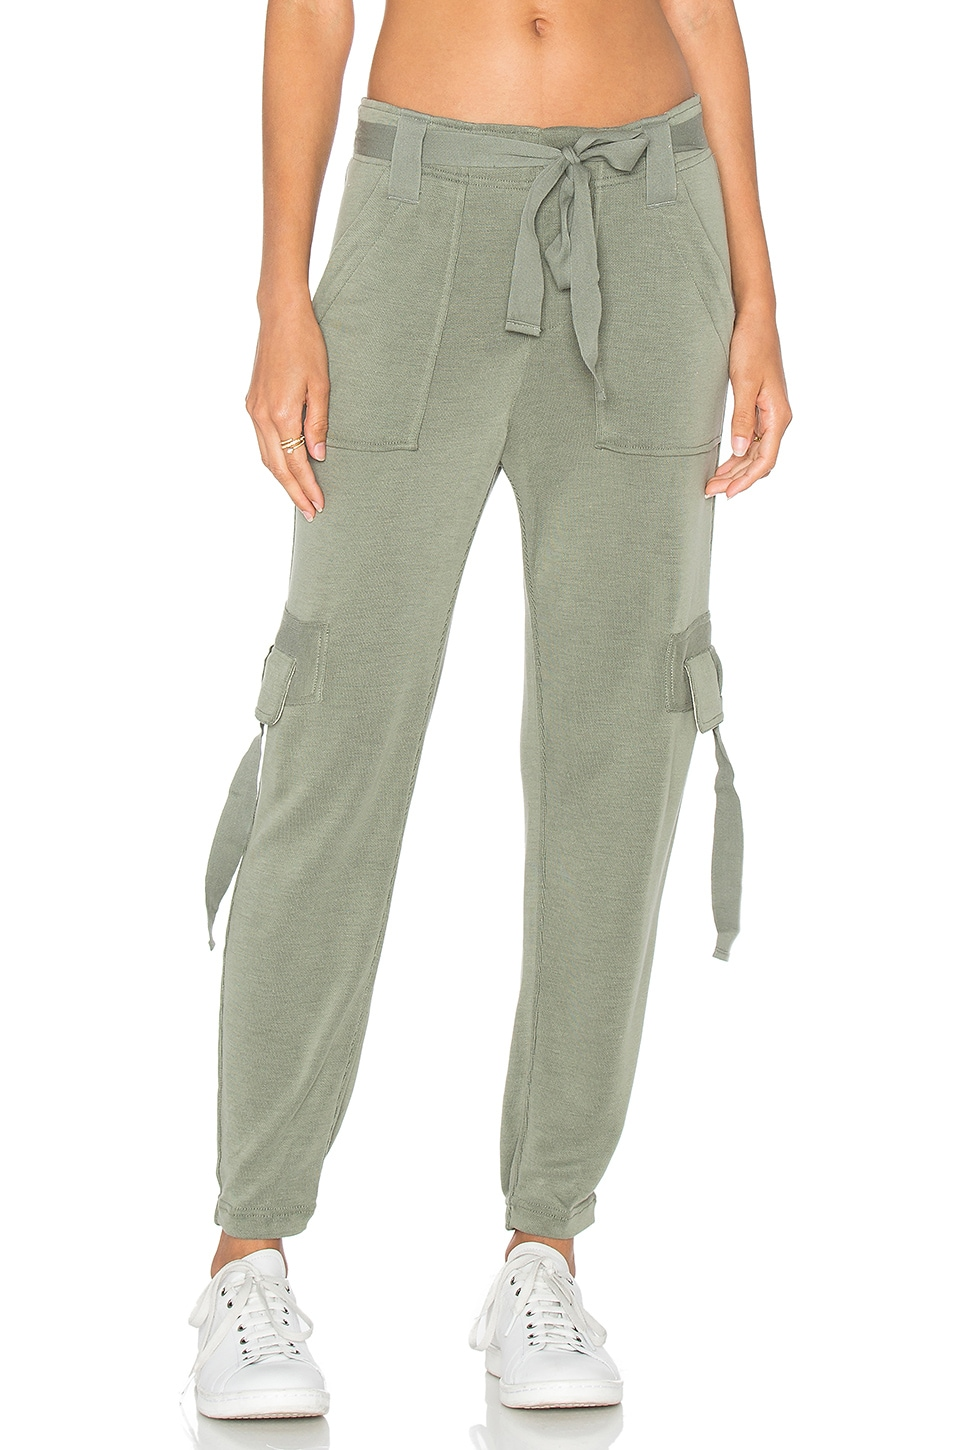 Free People Cannon Pant in Mint